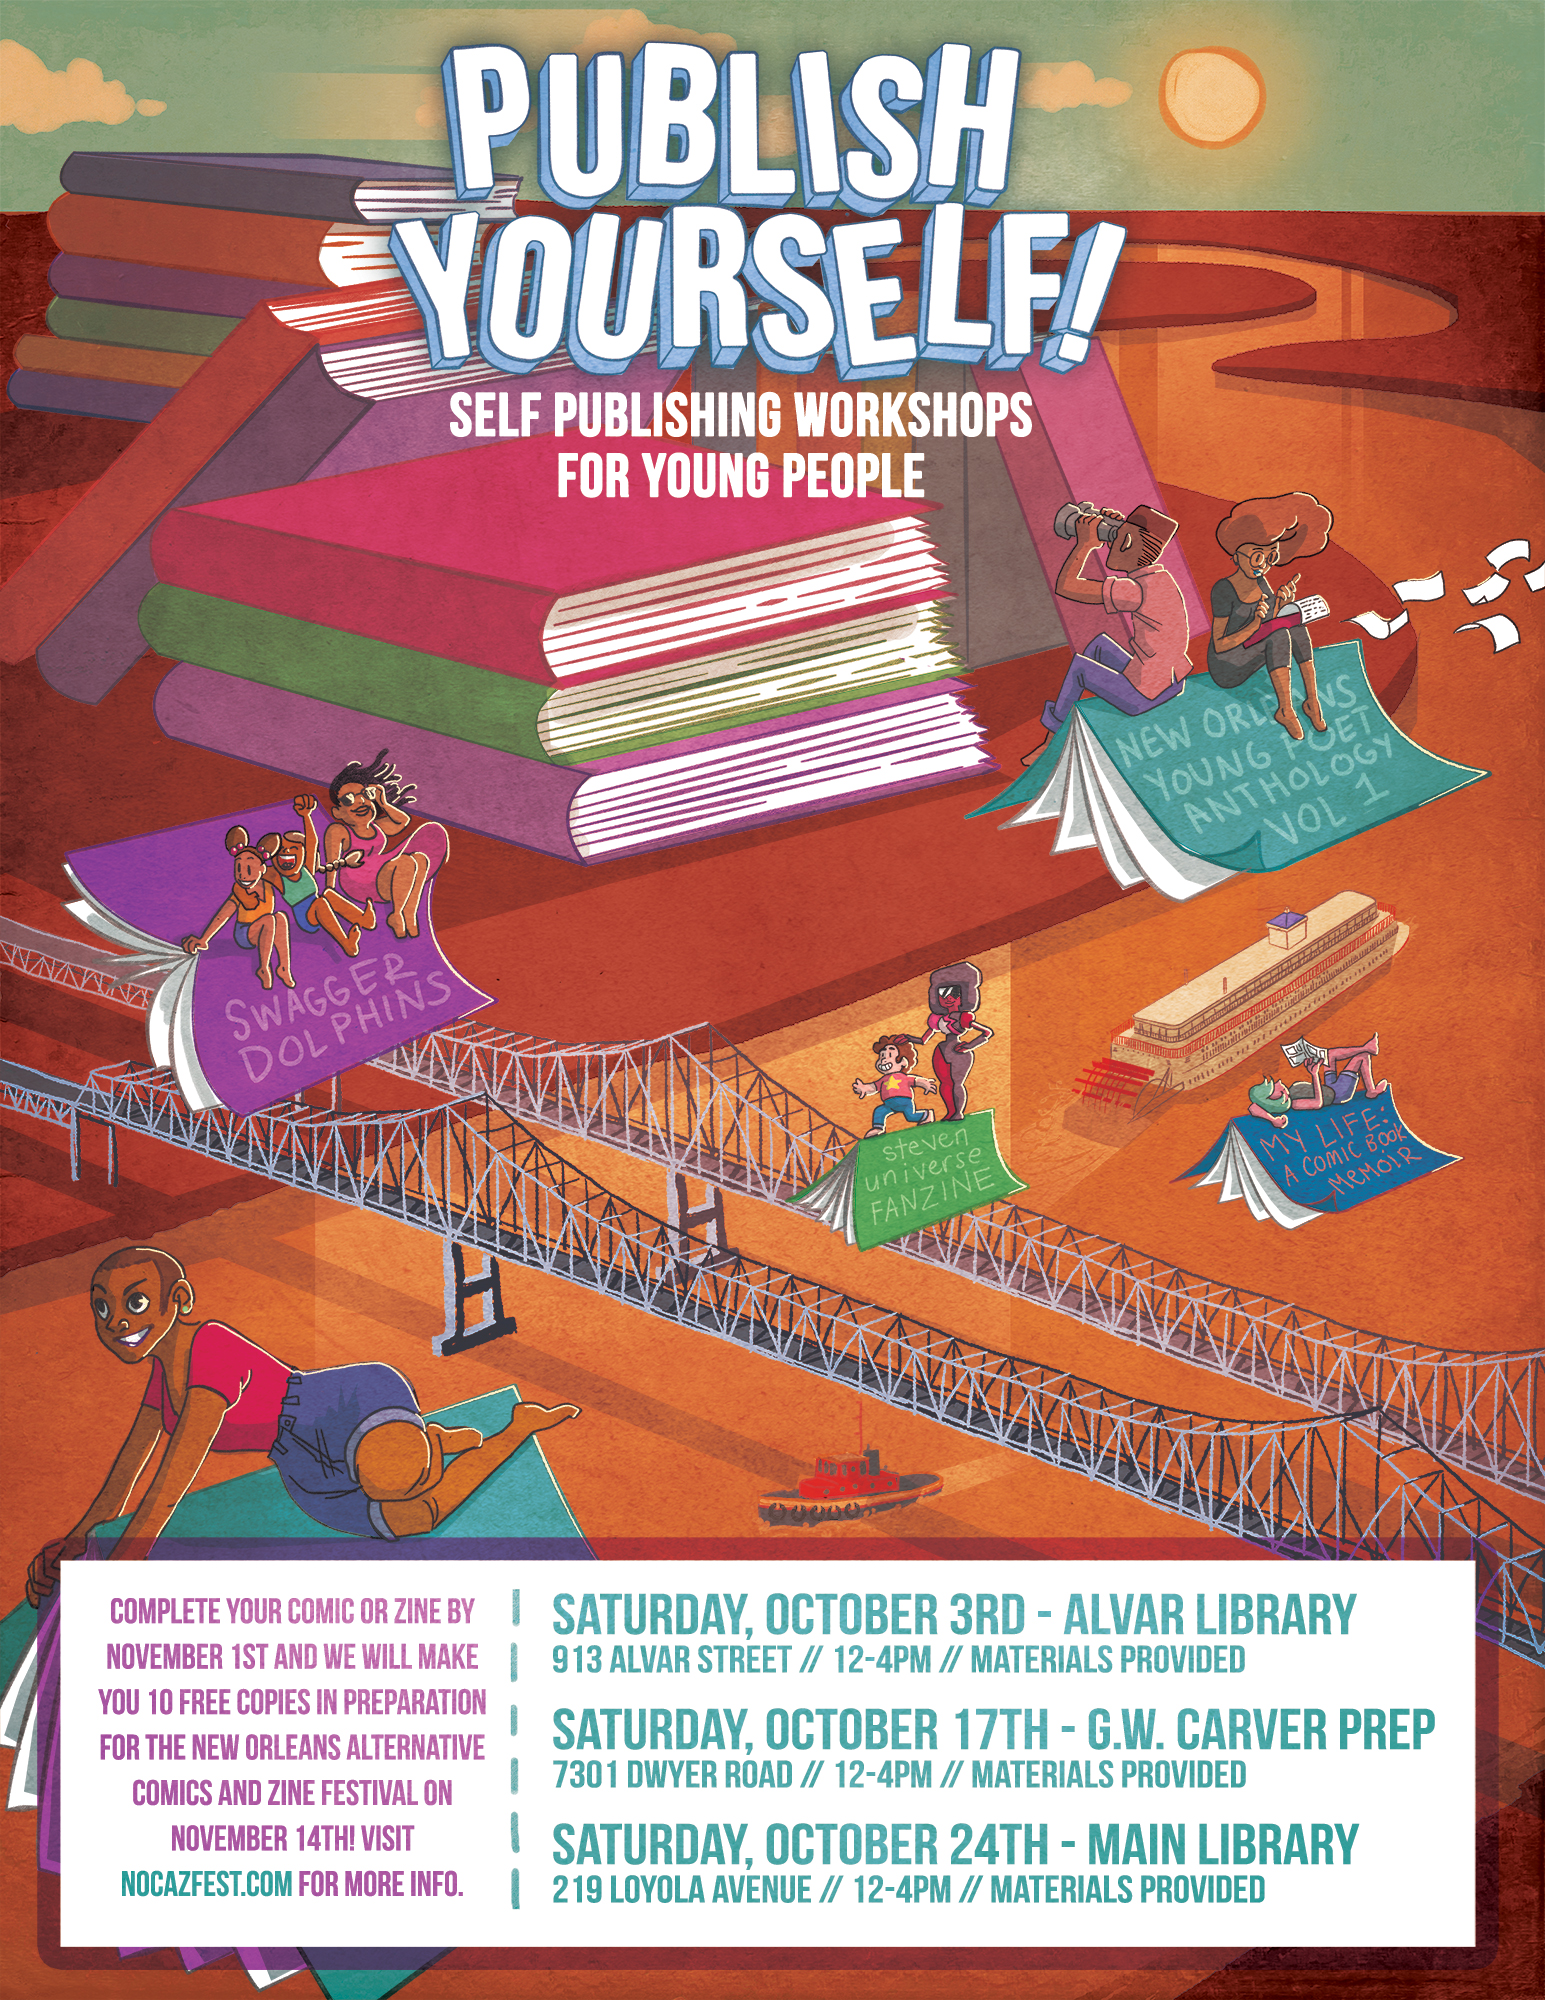 Publish Yourself! Workshop Poster